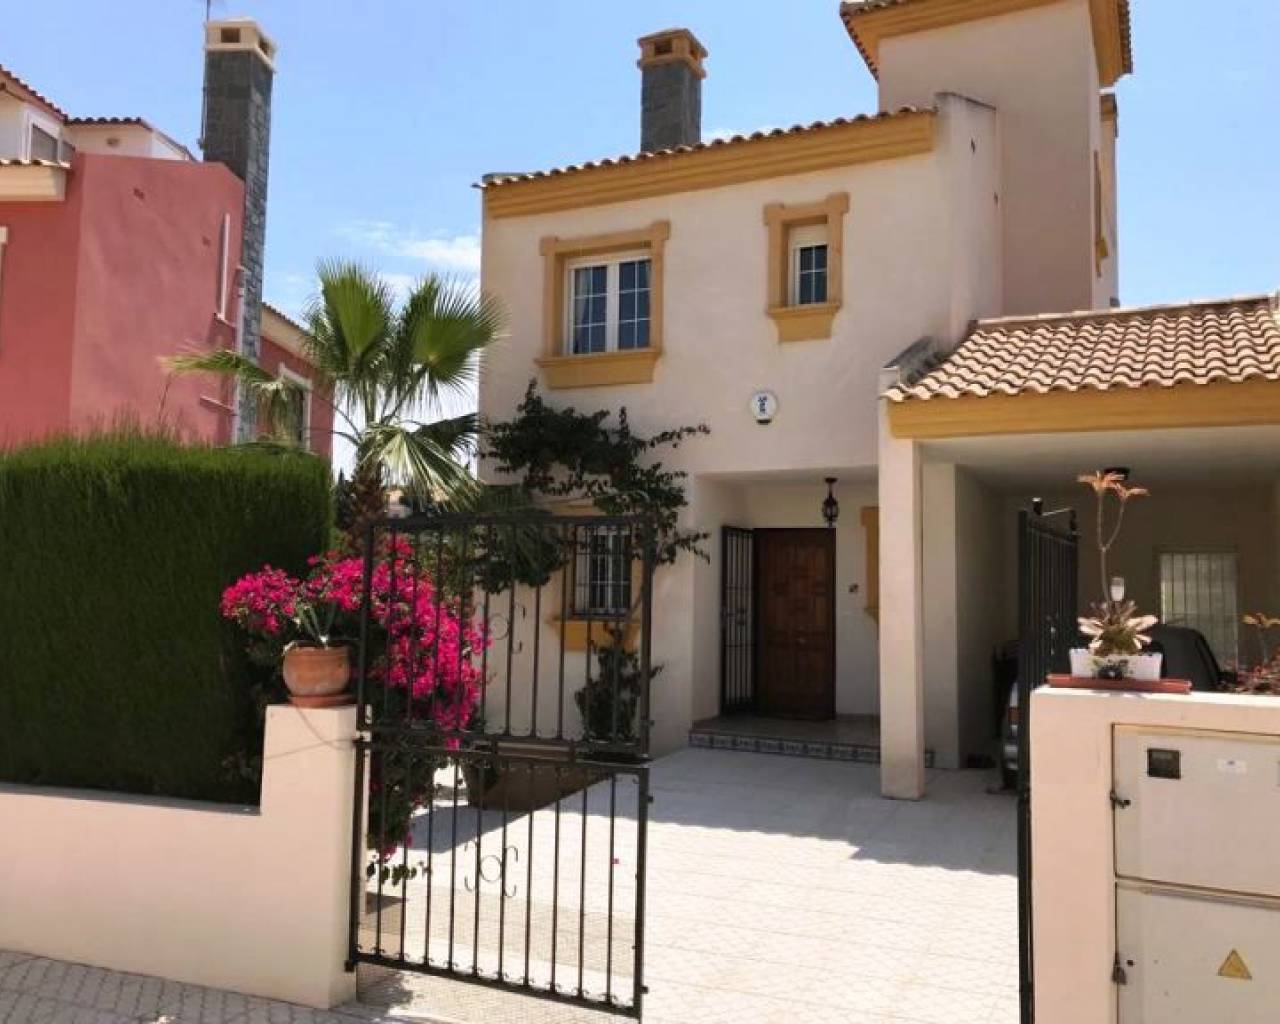 Venta - Detached Villa - Orihuela Costa - Cabo Roig